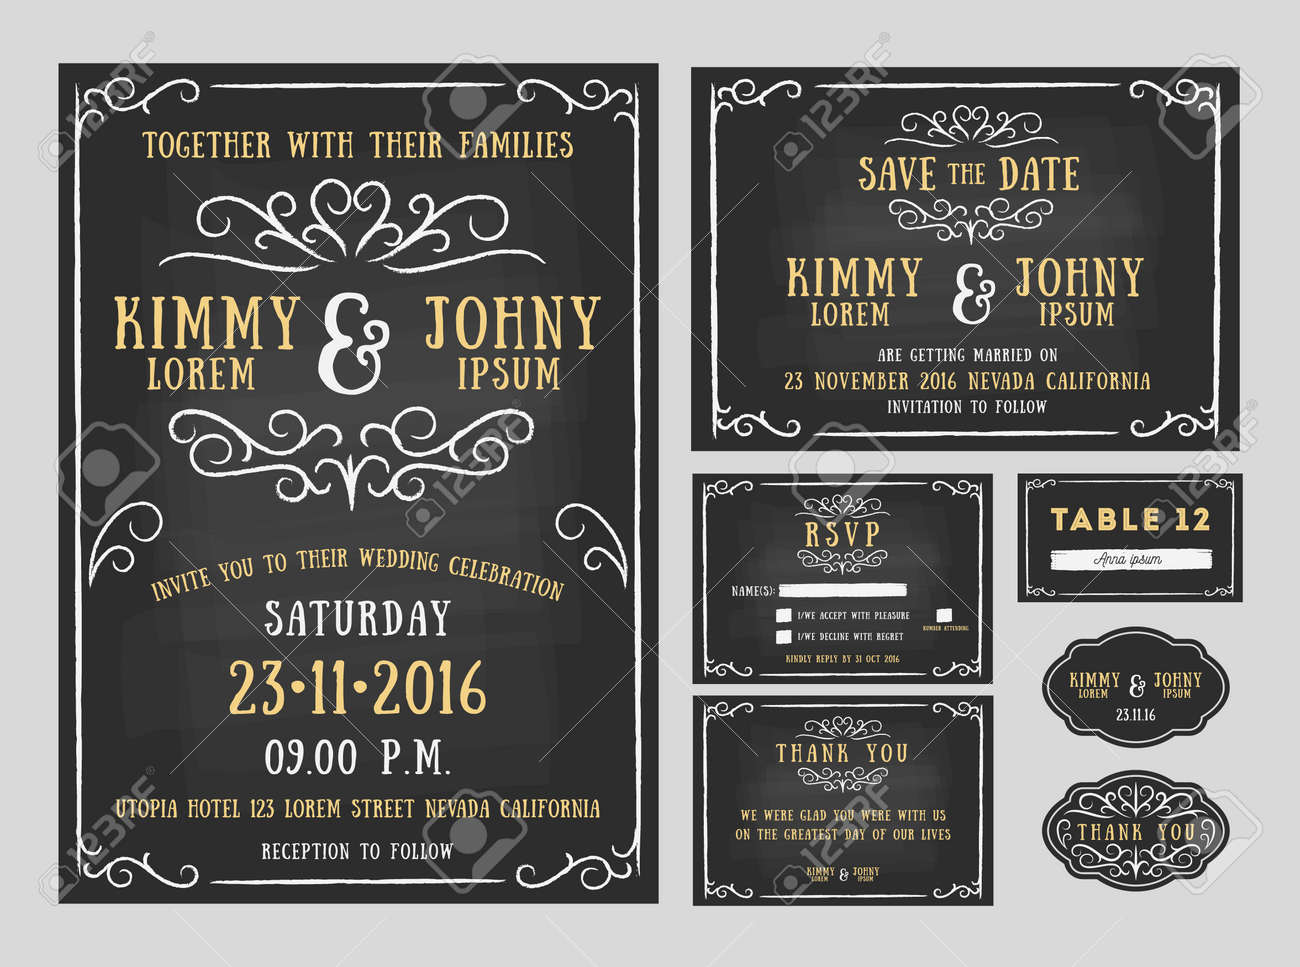 Wedding invitation chalkboard design with flourishes line. include Invitation card, Save the date, RSVP card, Thank you card, Table number, Gift tags, Place cards, Respond card. Vector illustration - 45154607